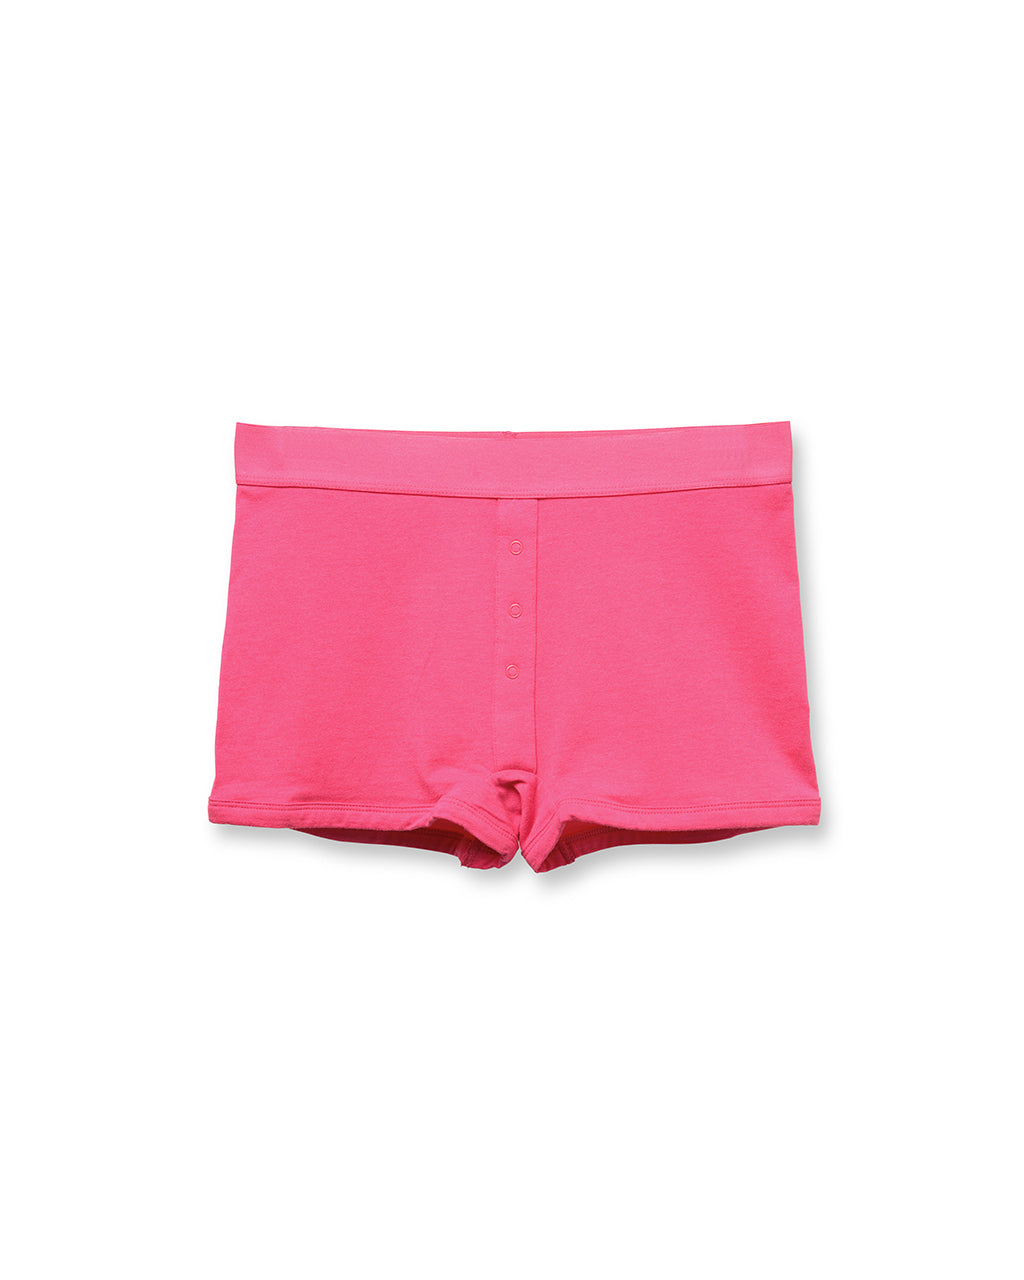 Femme boxers in pink.